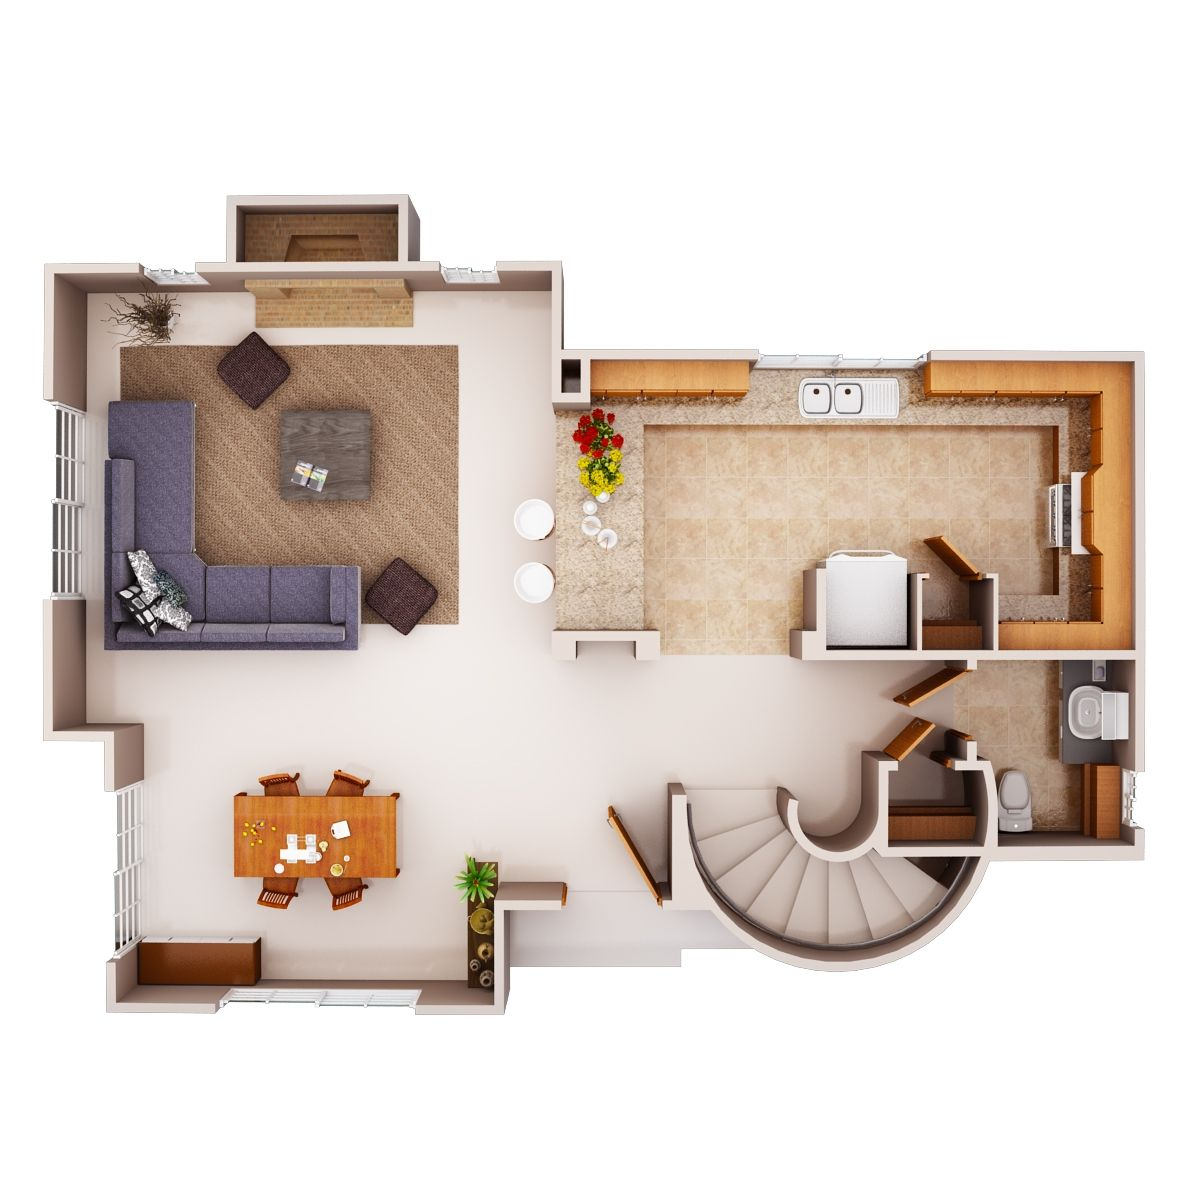 Architectural Floor Plan Design Hello We Want To Propose To You One Service For Architectural Fl Architectural Floor Plans Floor Plan Design Plan Design